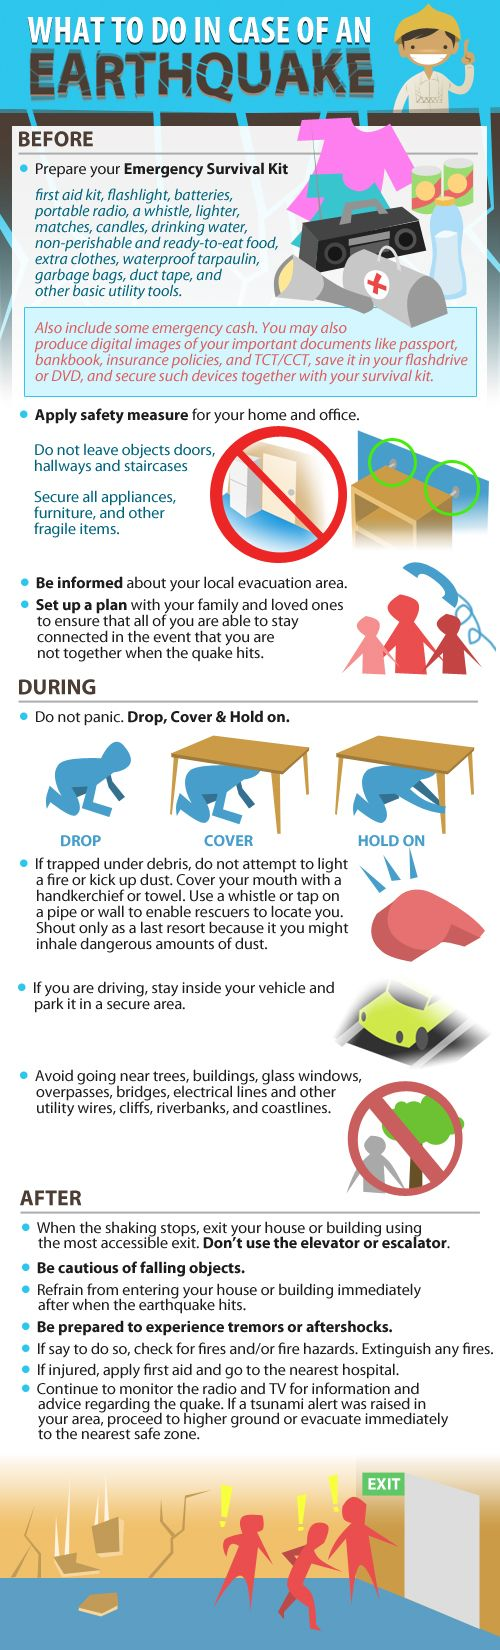 Earthquake Preparedness Tips INFOGRAPHICS Source: http://energizepinas.com/earthquake-preparedness-tips/#